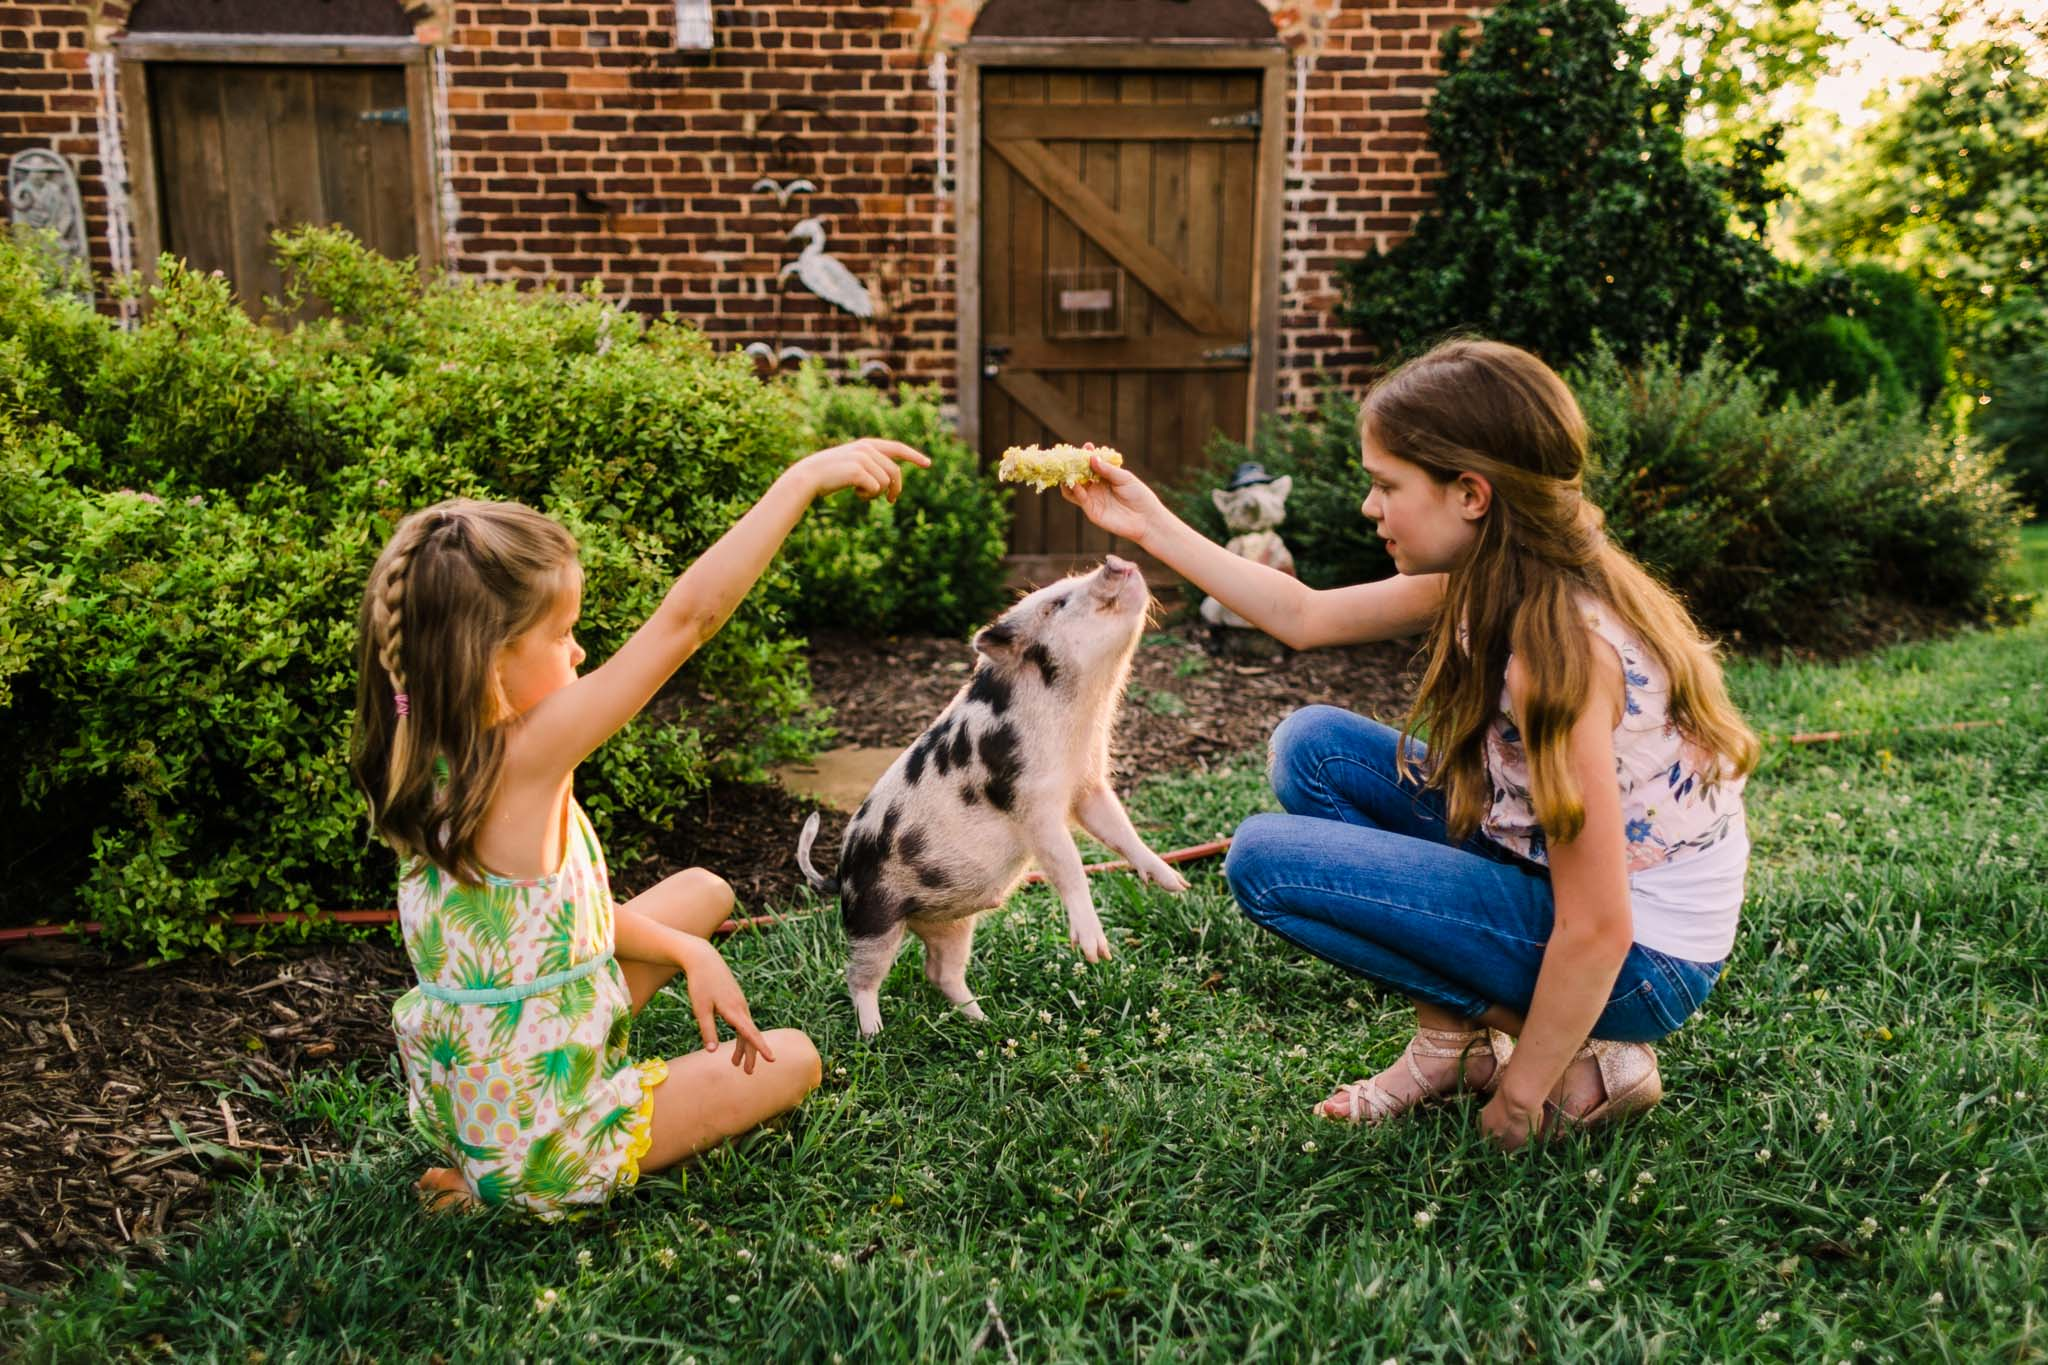 Durham Family Photographer | By G. Lin Photography | Miniature pig jumping